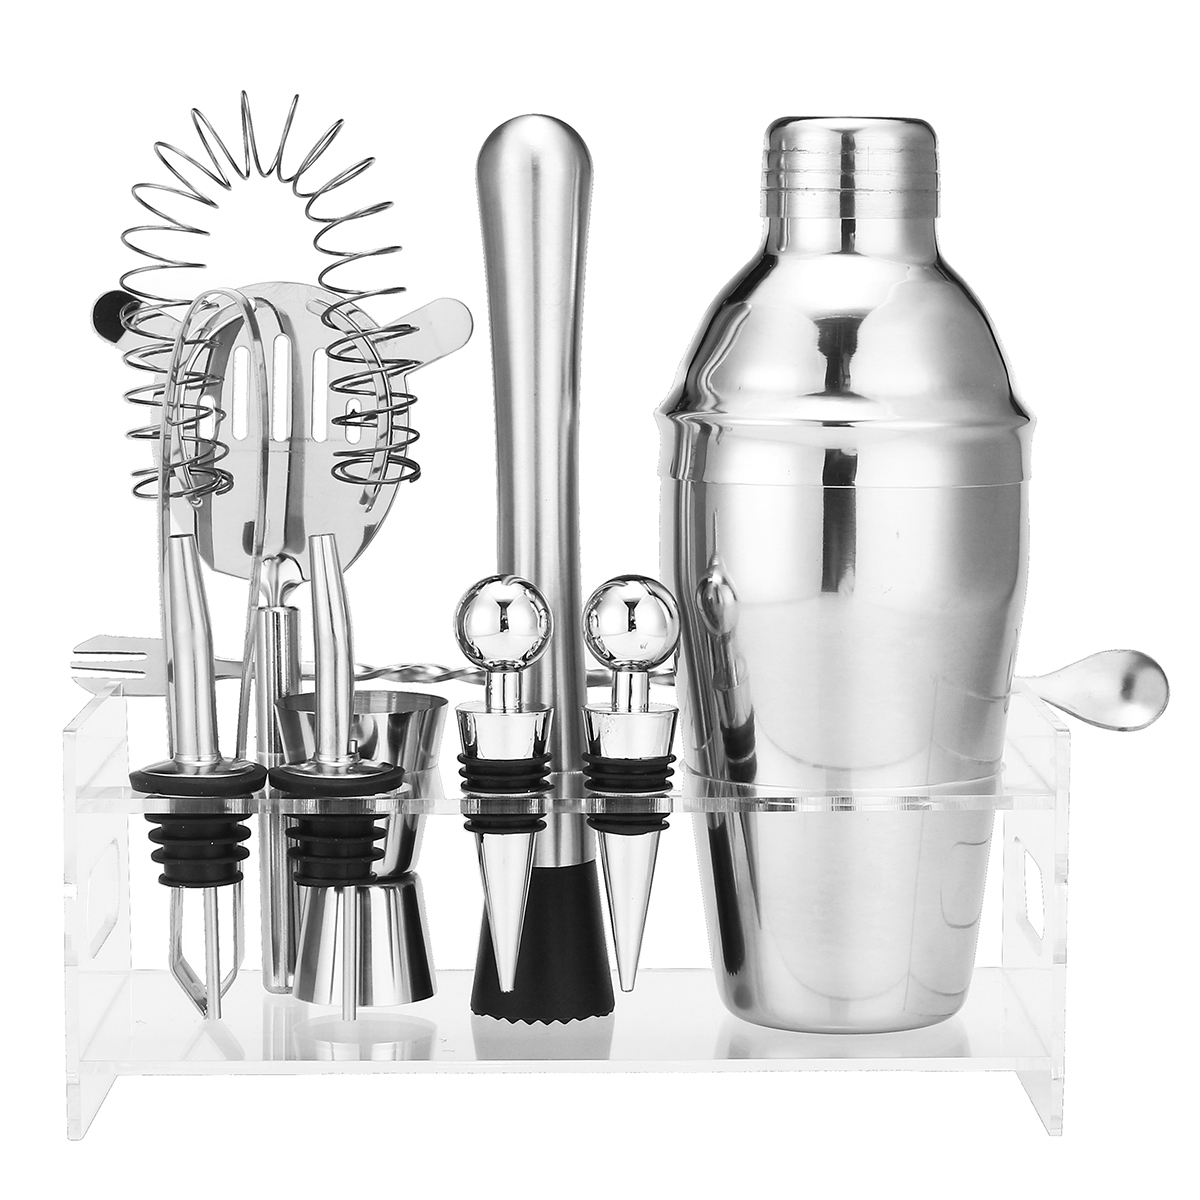 Stainless Steel 350/550ML 10PCS Barware Set Cocktail Shaker Measuring Cup Wine Drinking Mixer Kit Bar Tools Accessories Kitchen